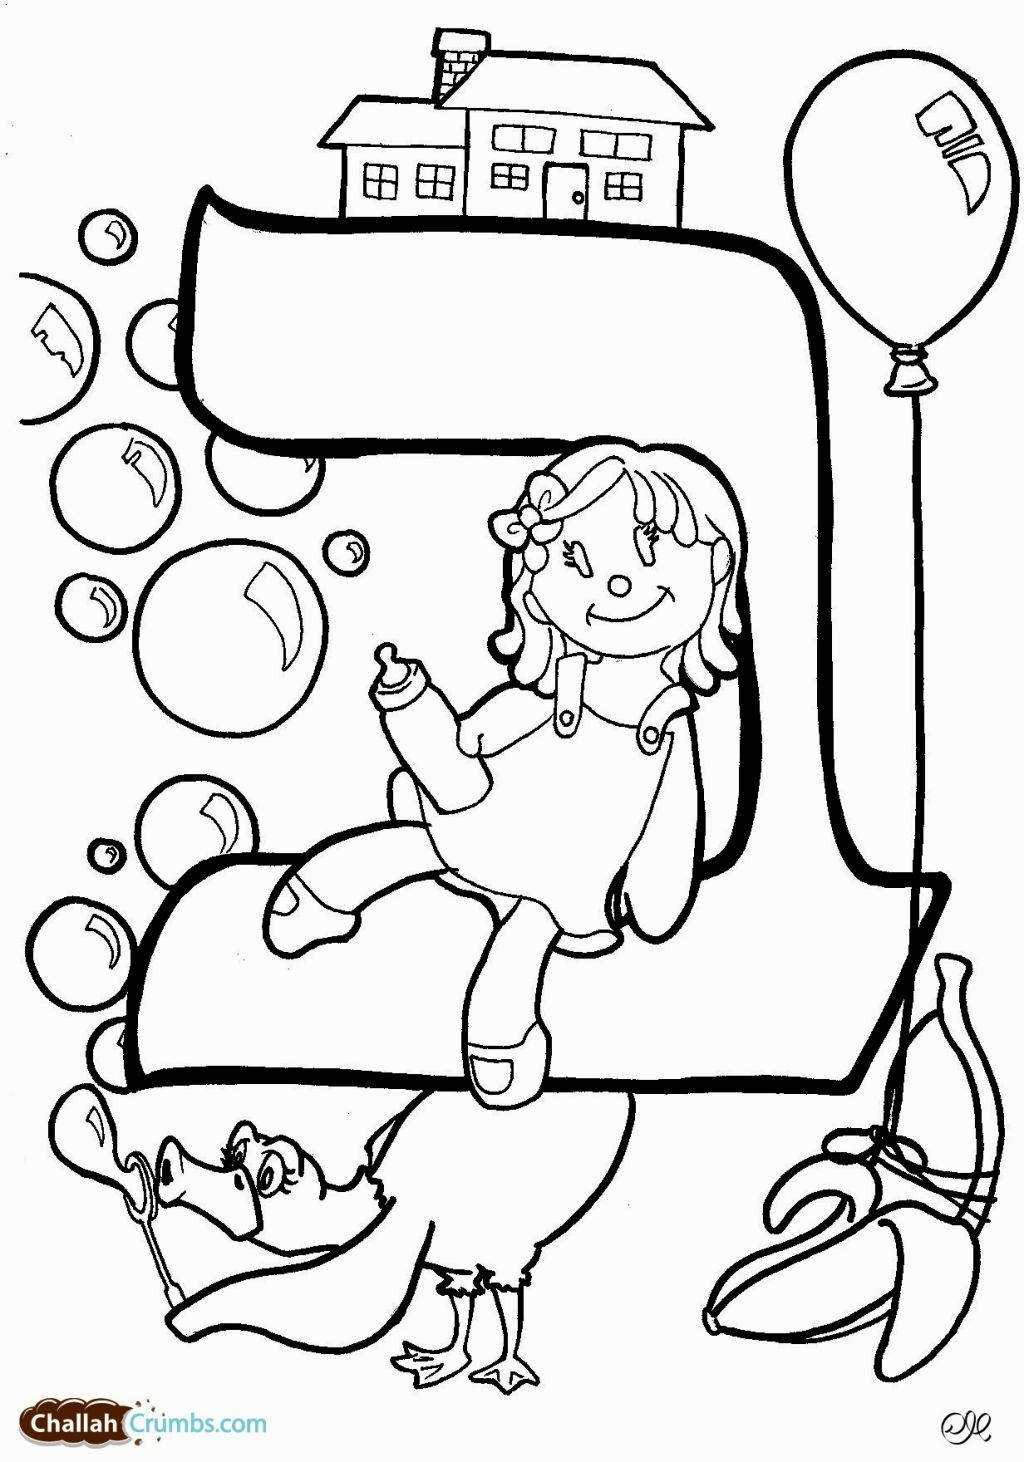 Torah Tots Coloring Pages Hebrew Education Learn Hebrew Aleph Bet